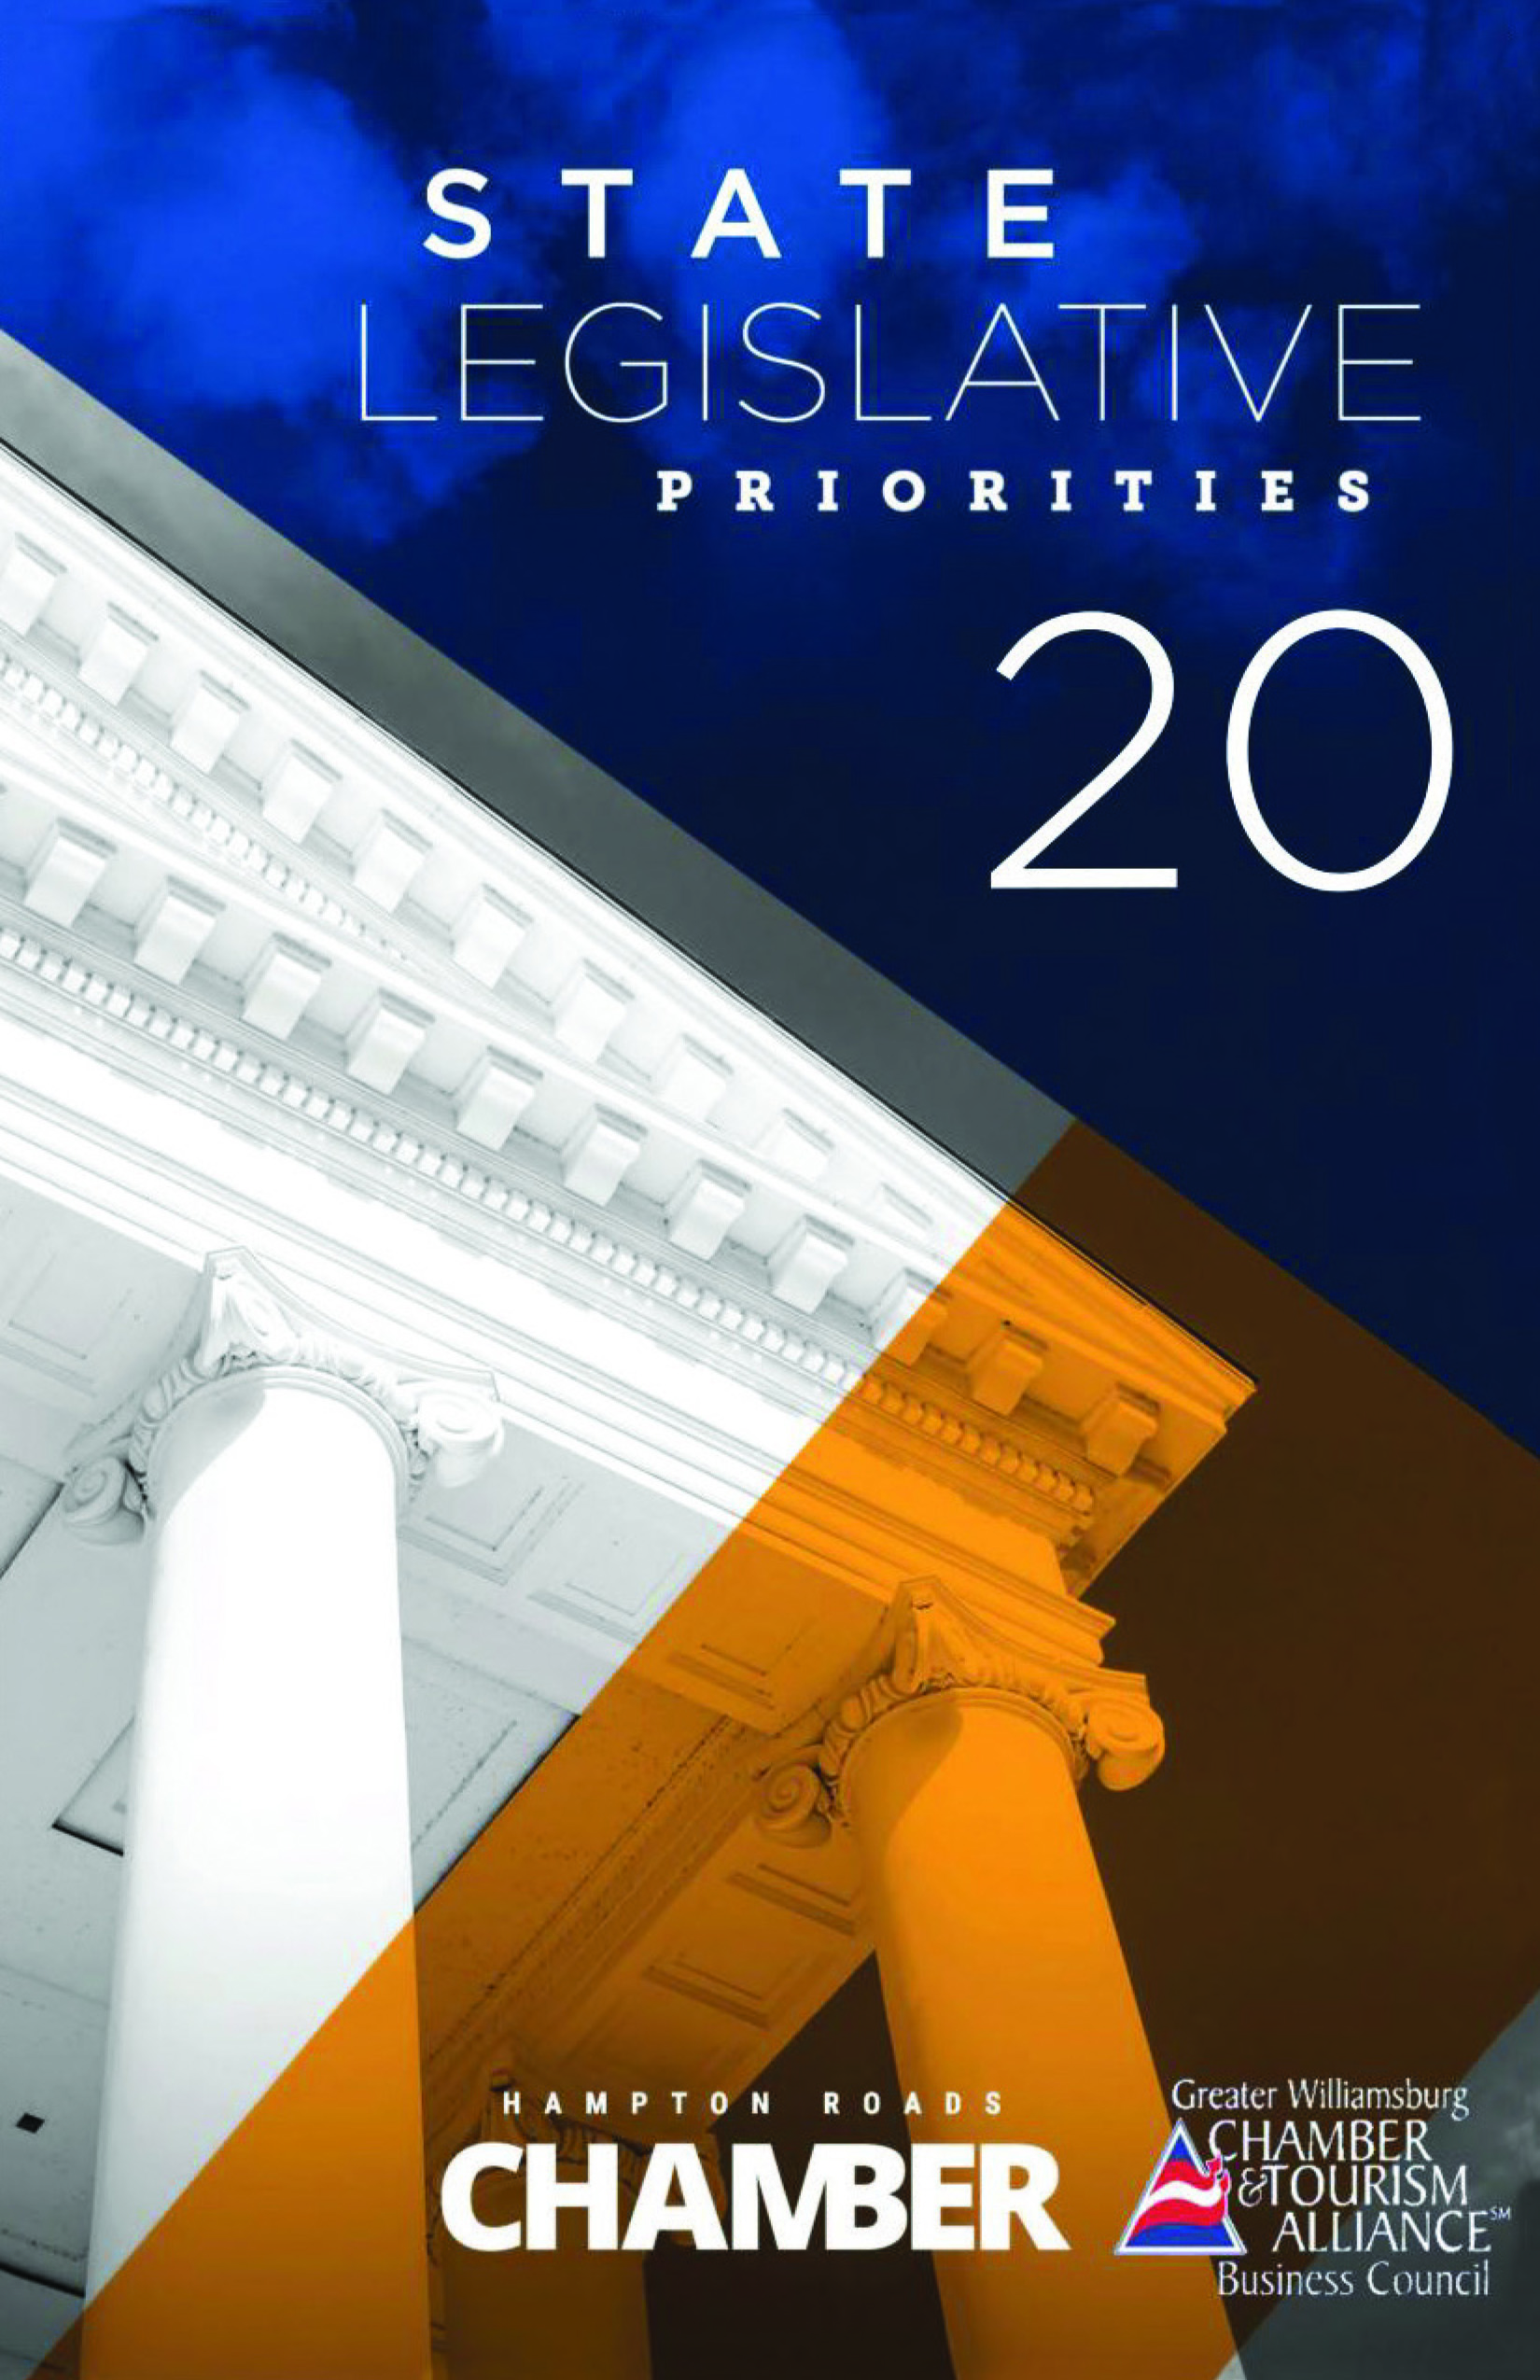 State Legislative Priorities 2020